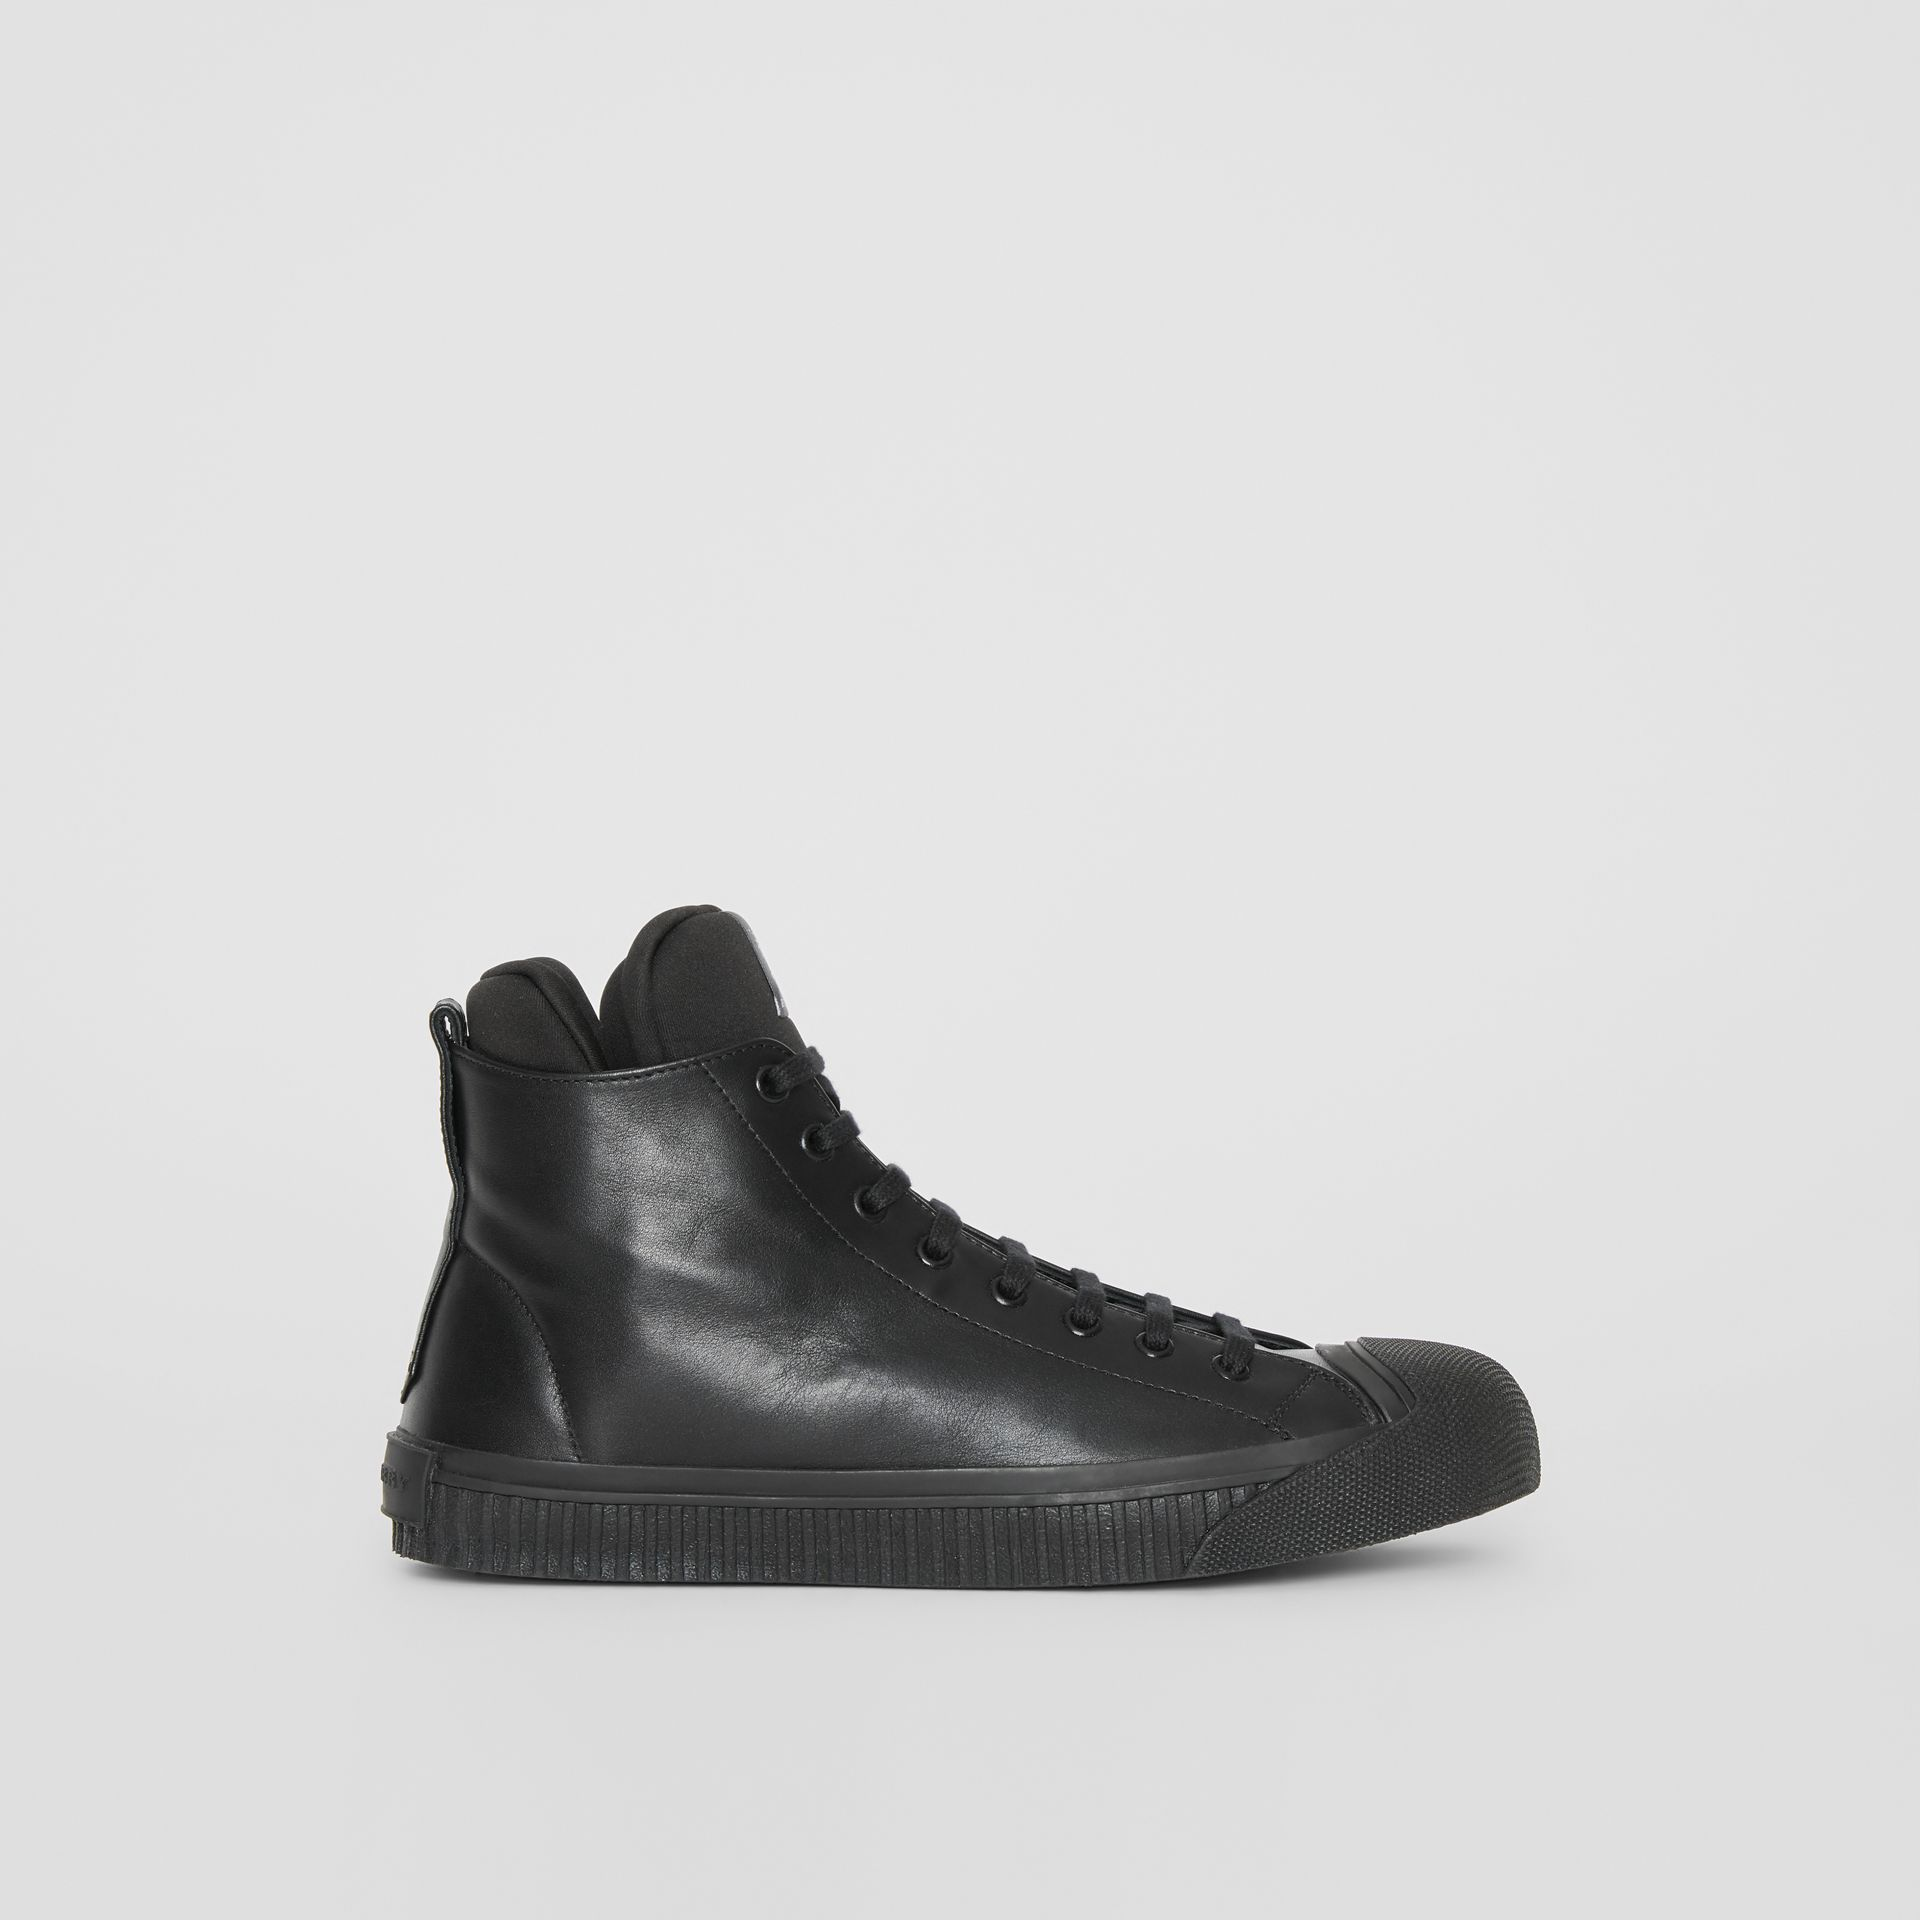 Leather and Neoprene High-top Sneakers in Black - Men | Burberry Australia - gallery image 5